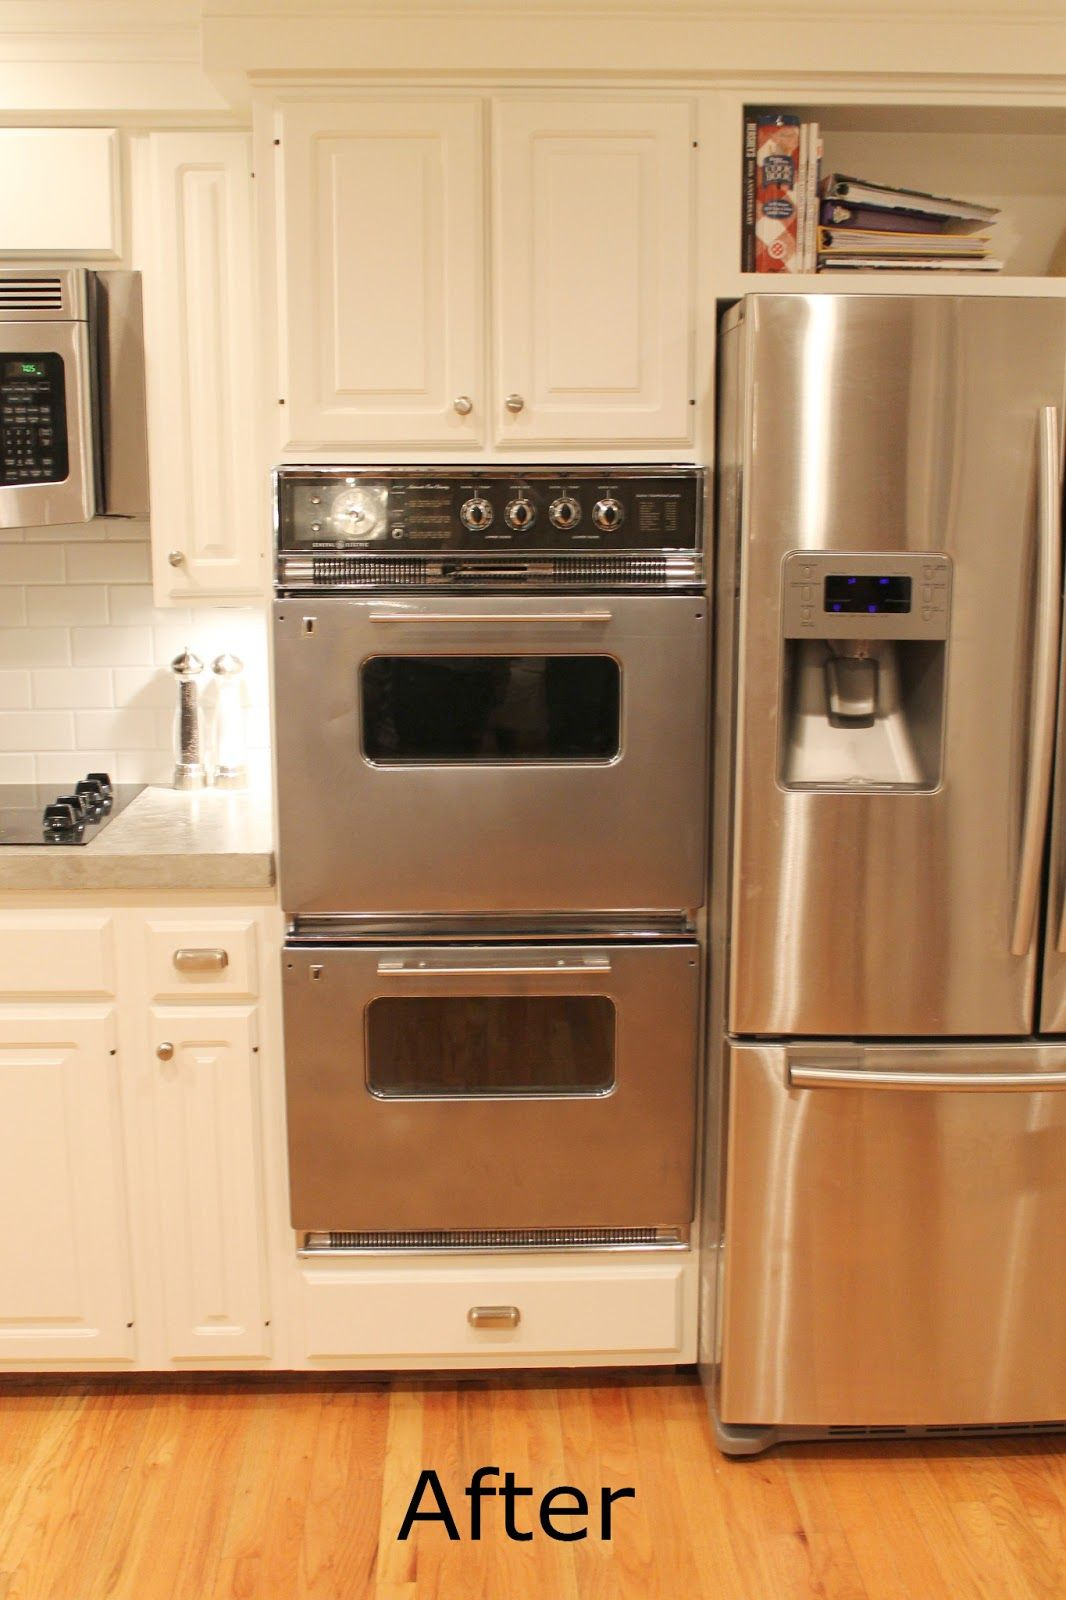 Ikea Oven Cabinet Double Kitchen Cabinets Cliff All Products Oven Cabinet Wall Oven Double Oven